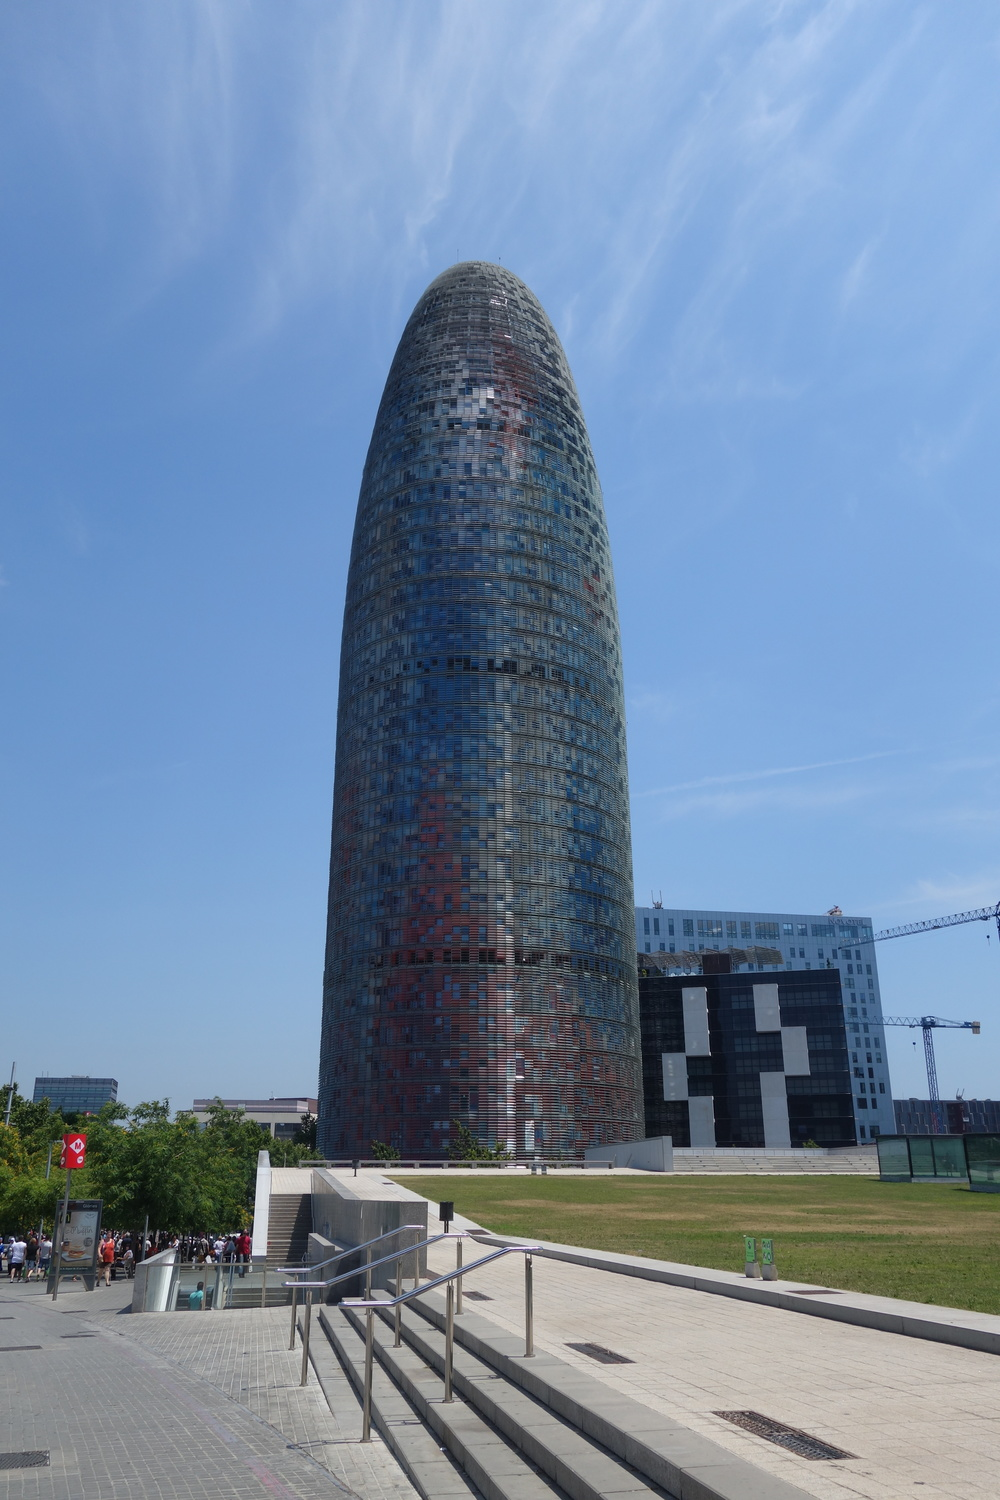 The Agbar Tower in Barcelona, Spain